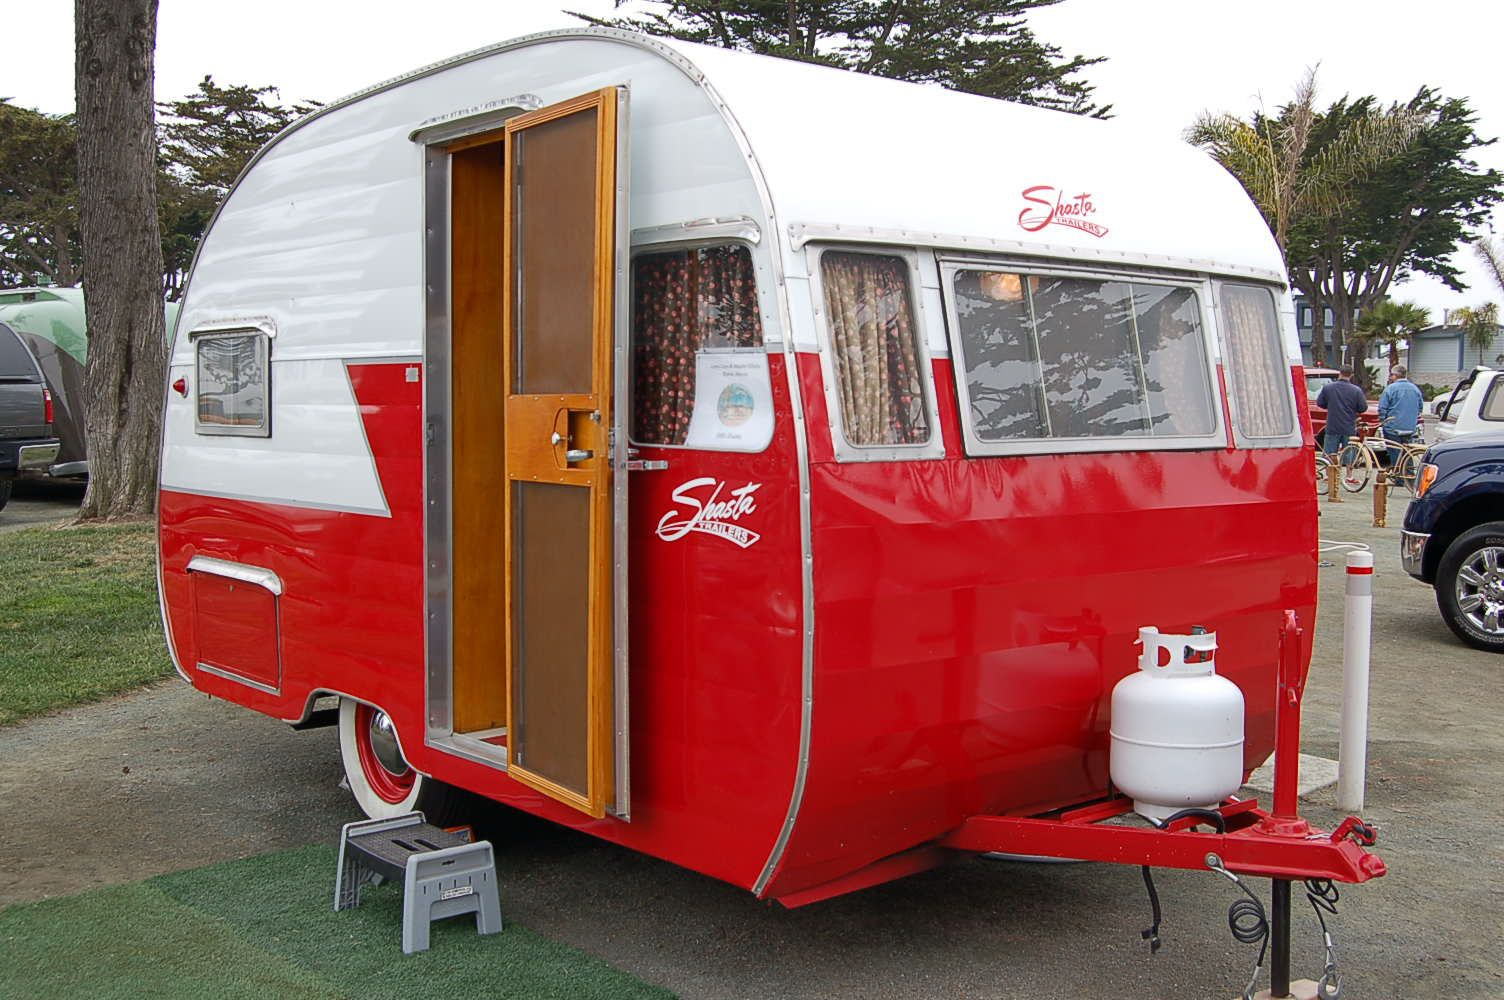 Slick Red And White Vintage 1956 Shasta Trailer At Pismo Beach See These More On My Hy Campers Pin Board